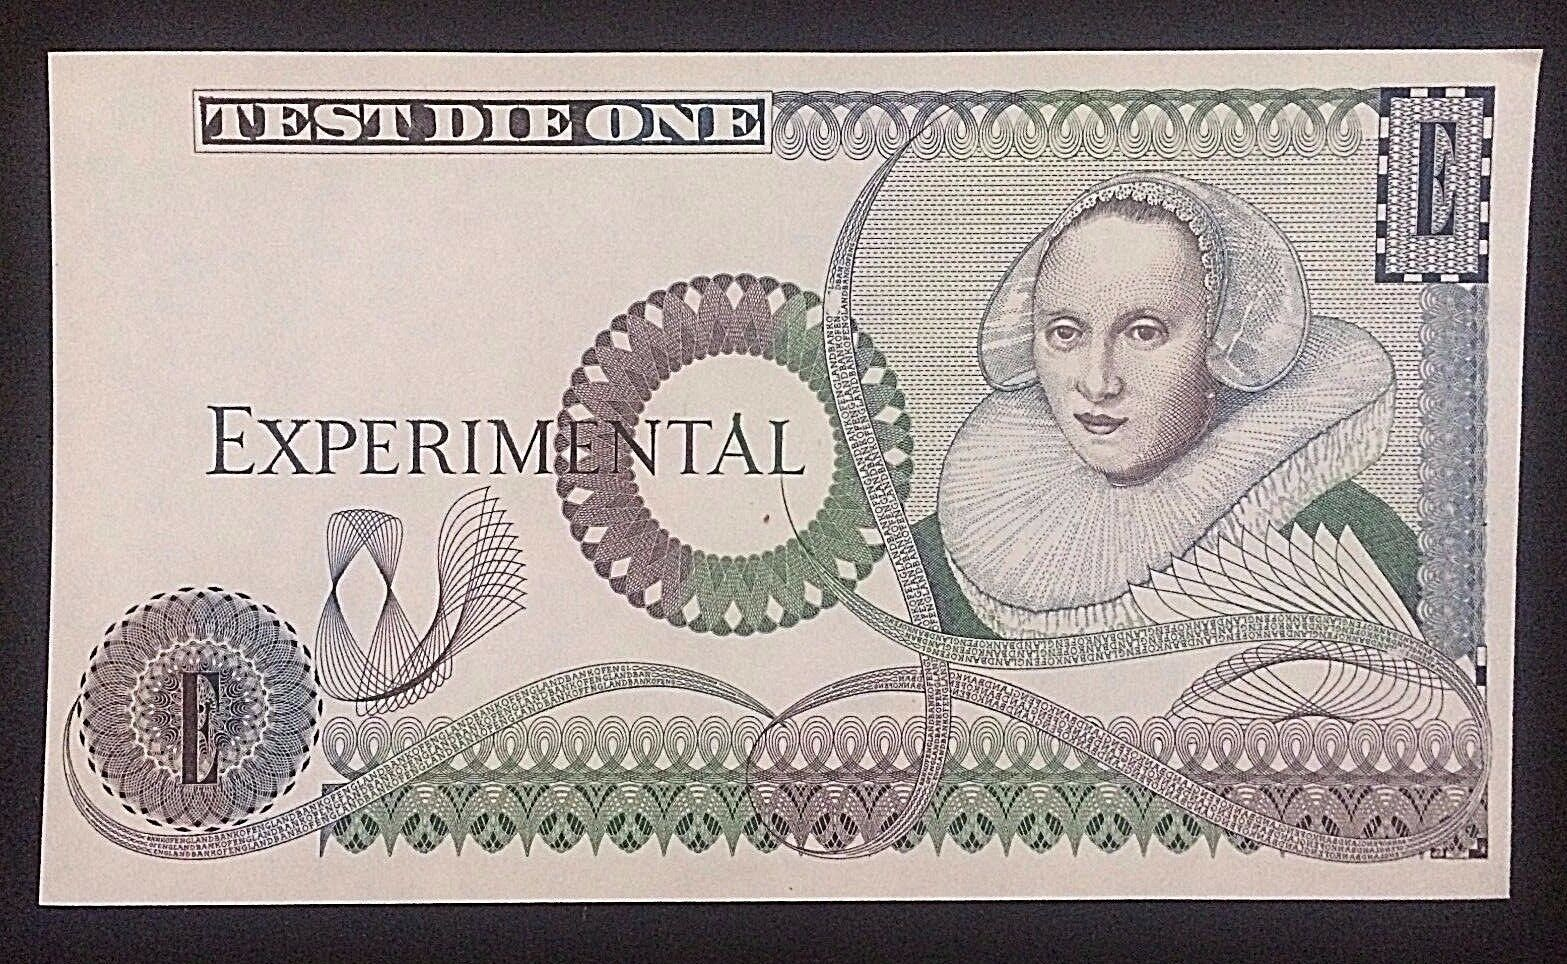 WHOLESALE 100 with MICRO PRINTING BANK of ENGLAND TEST DIE ONE EXPERIMENTALS UNC